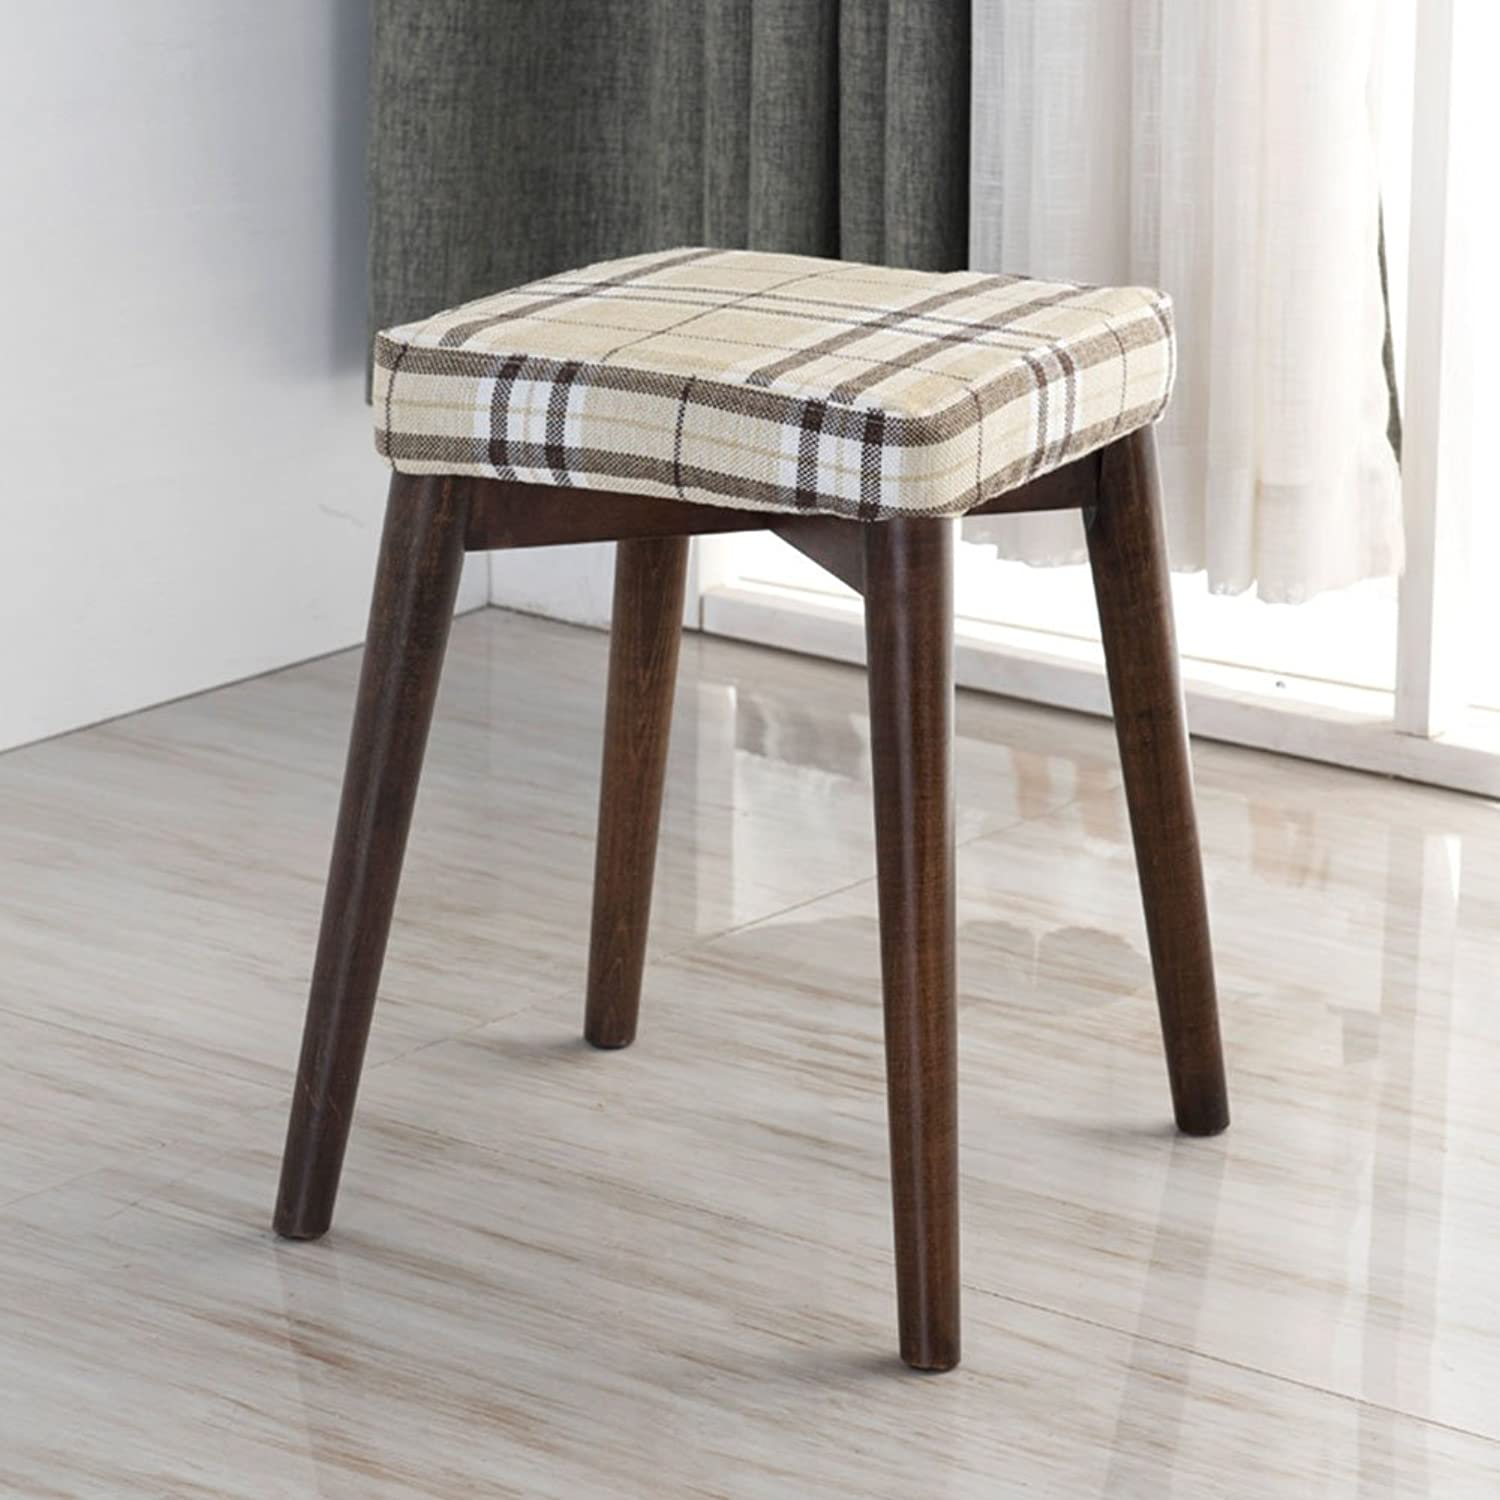 QIDI Stool Solid Wood Dining Chair Simple Cloth Dress Up Stool Fashion 33  33  46cm (color   Style 7)